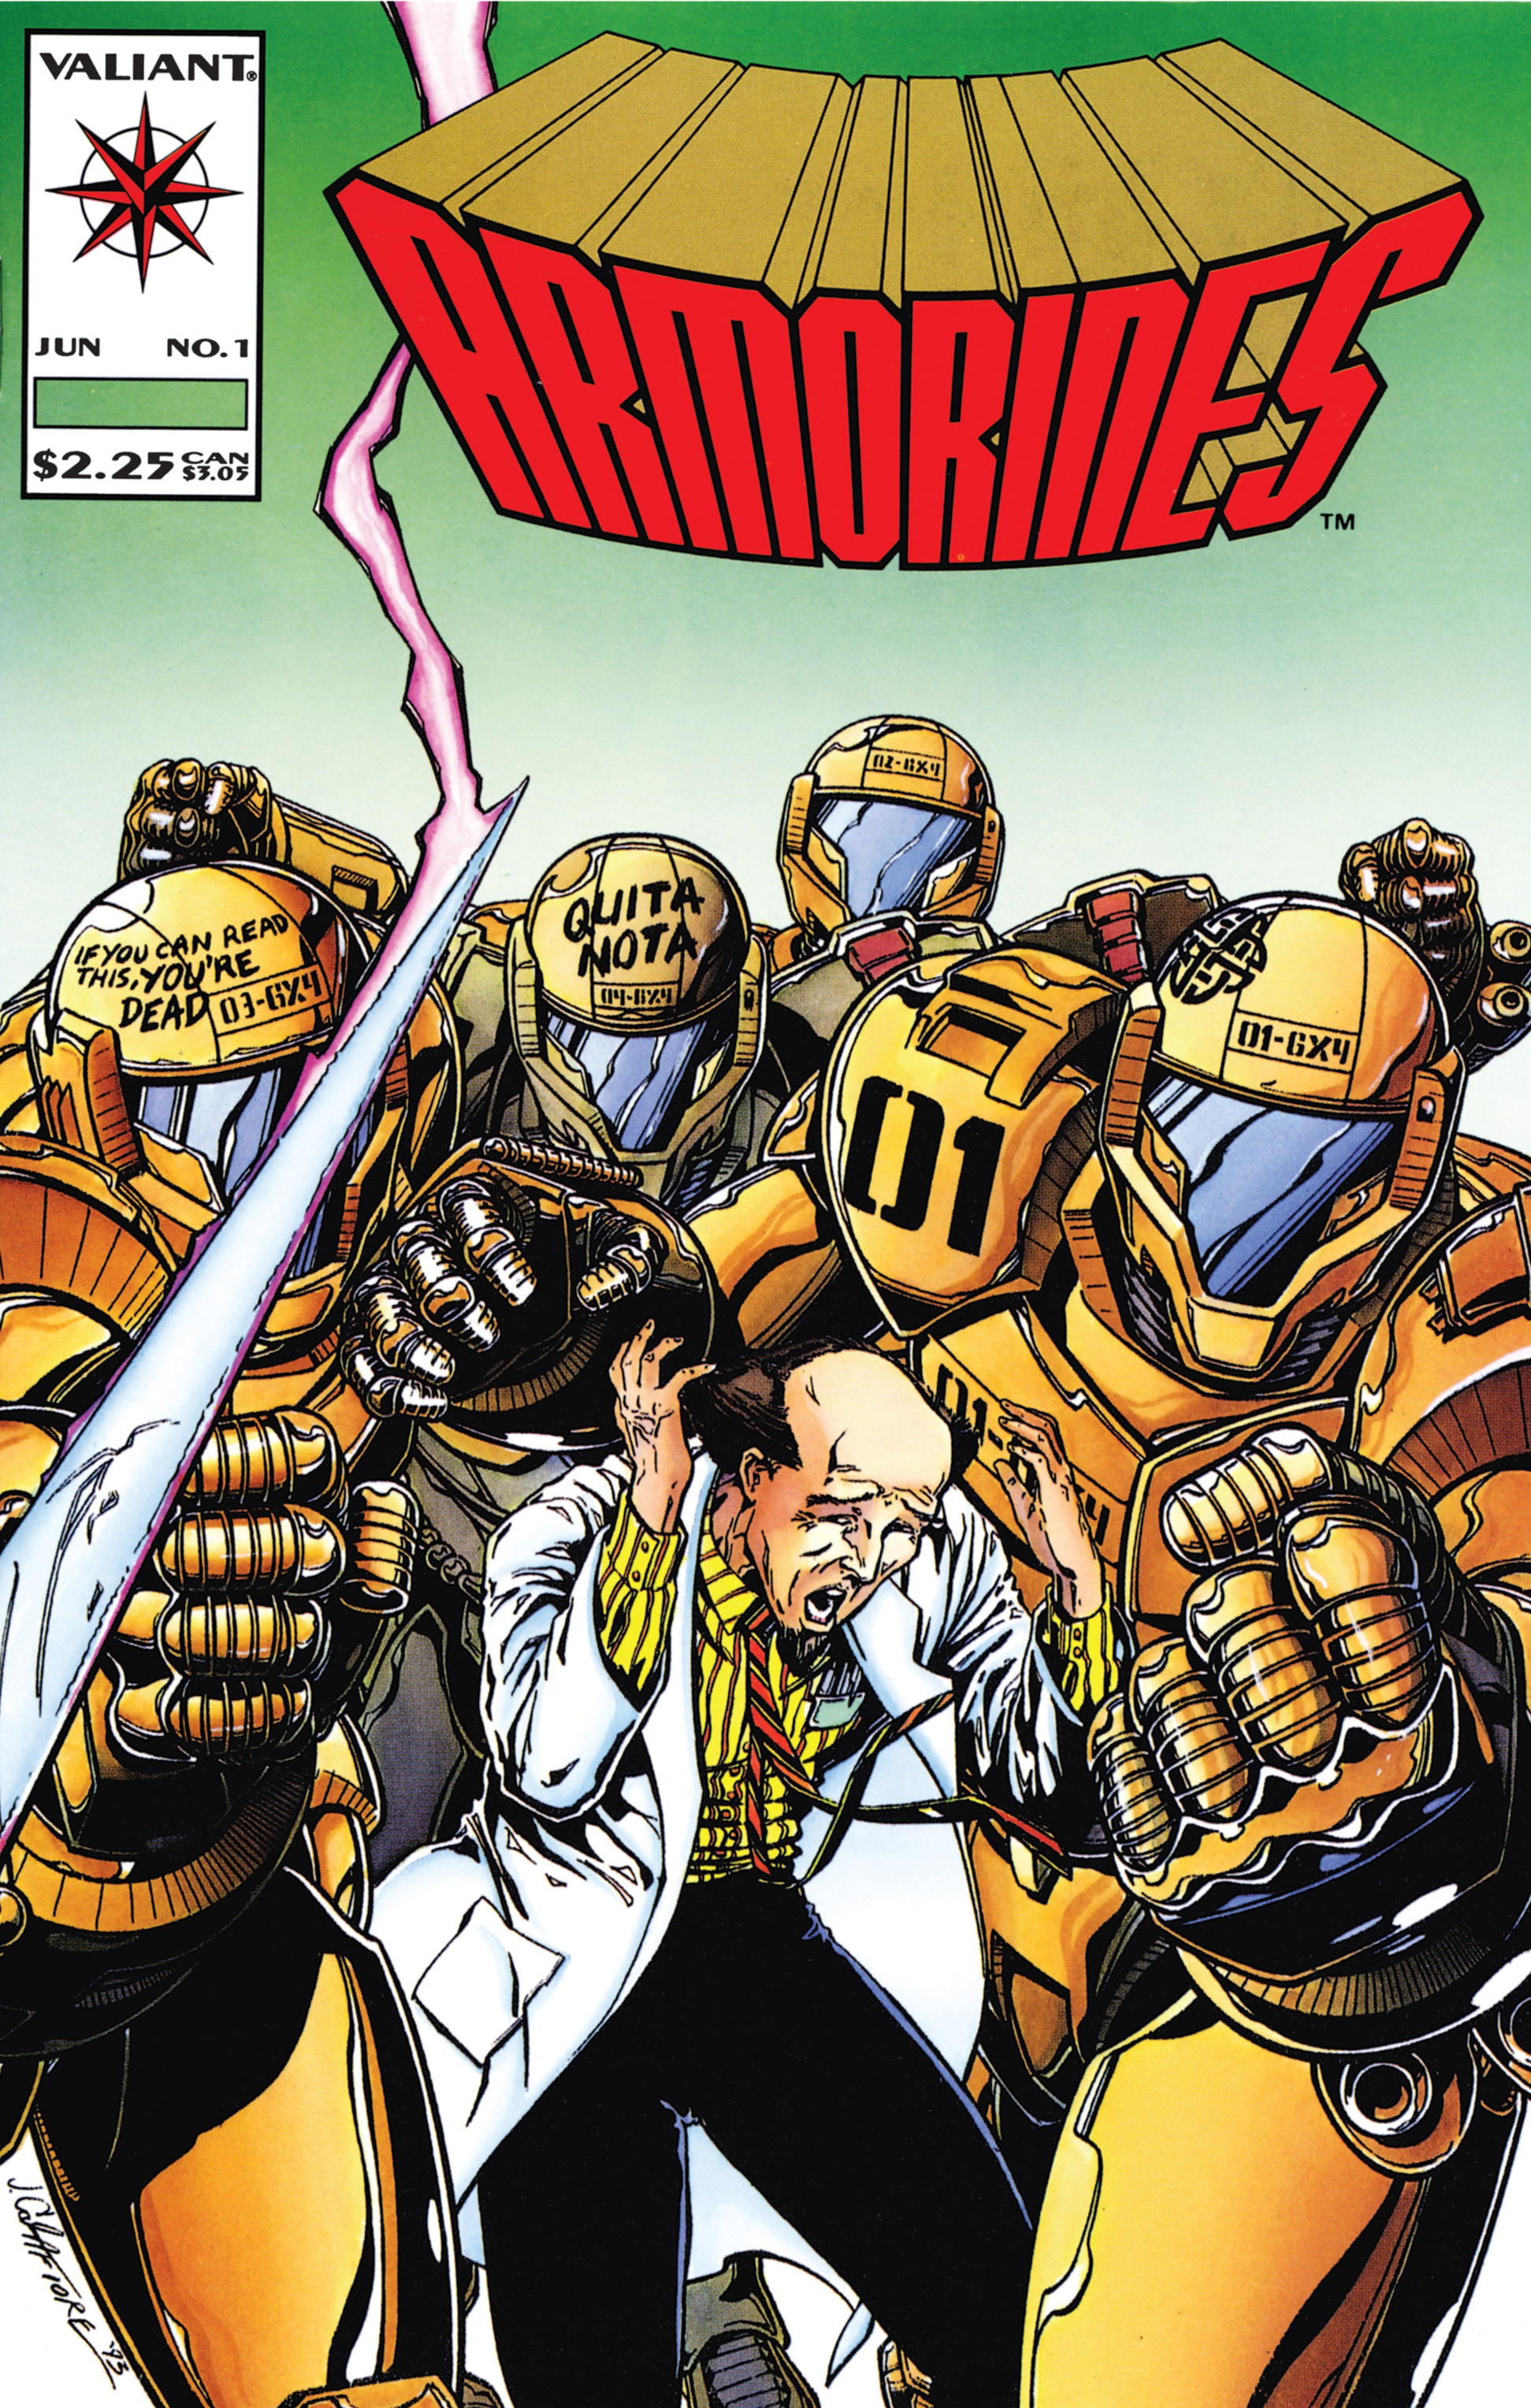 Read online Armorines comic -  Issue #1 - 1